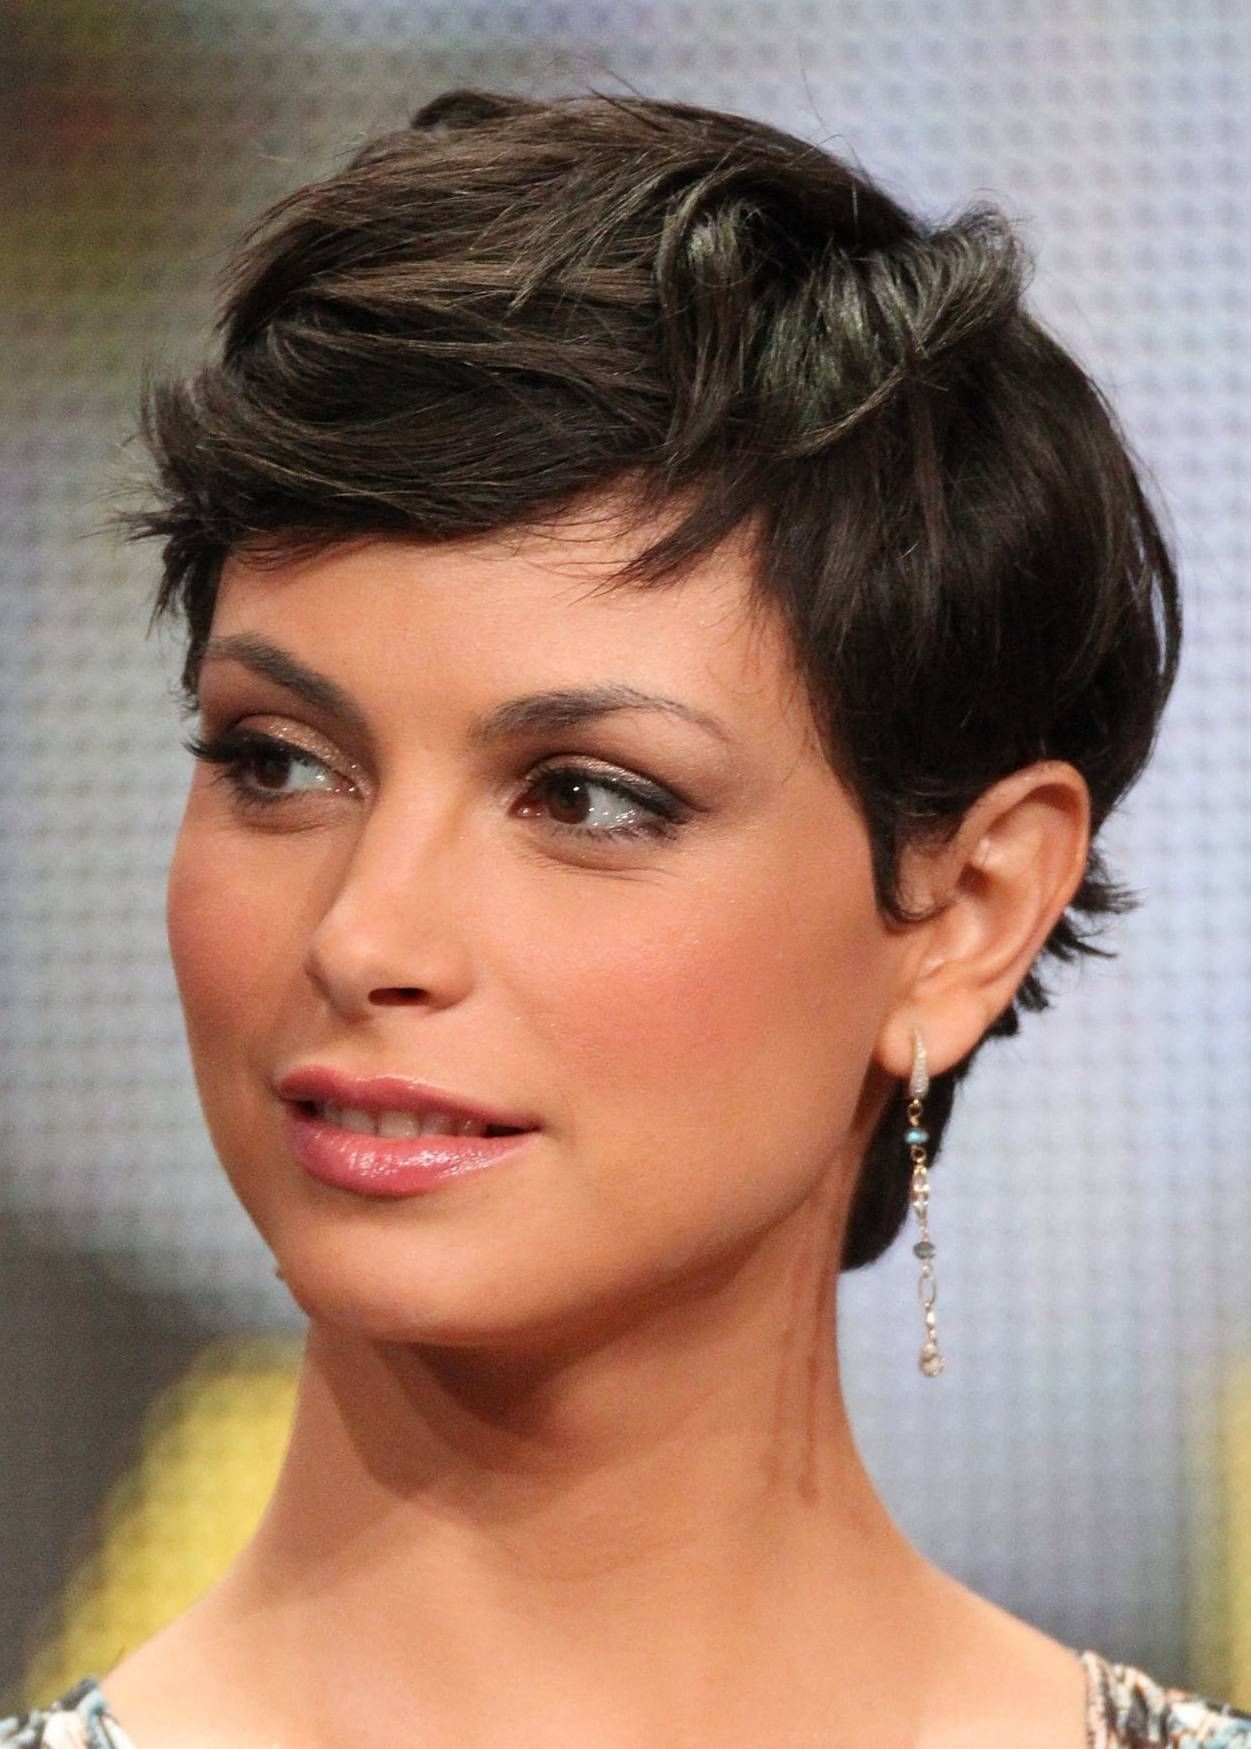 Short Pixie Styles Women Short Pixie Haircuts For Women With Curly